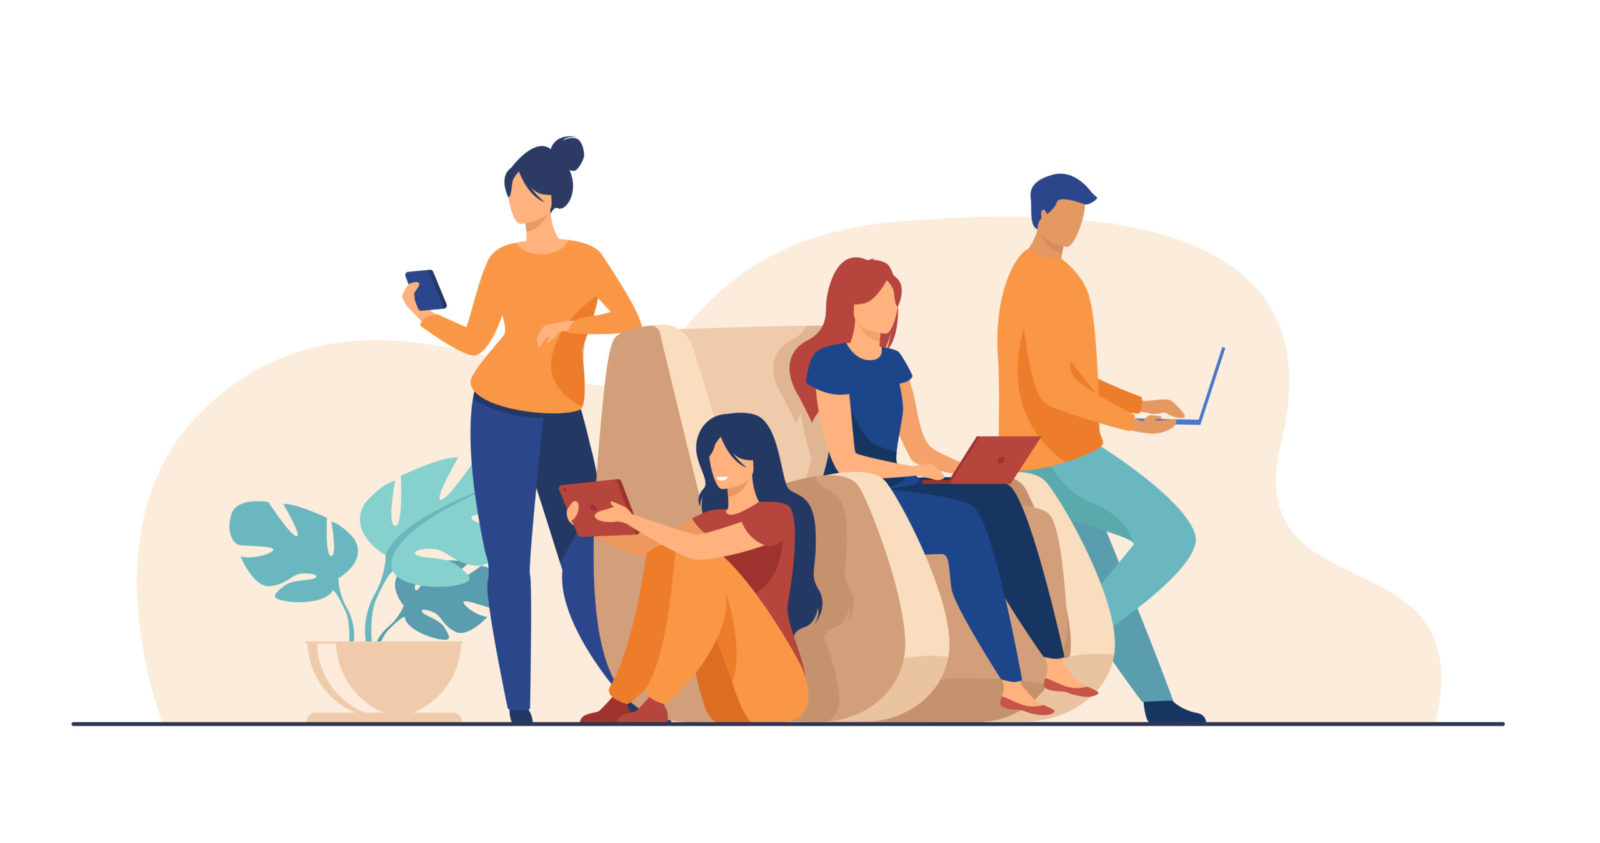 Digital device users spending time together